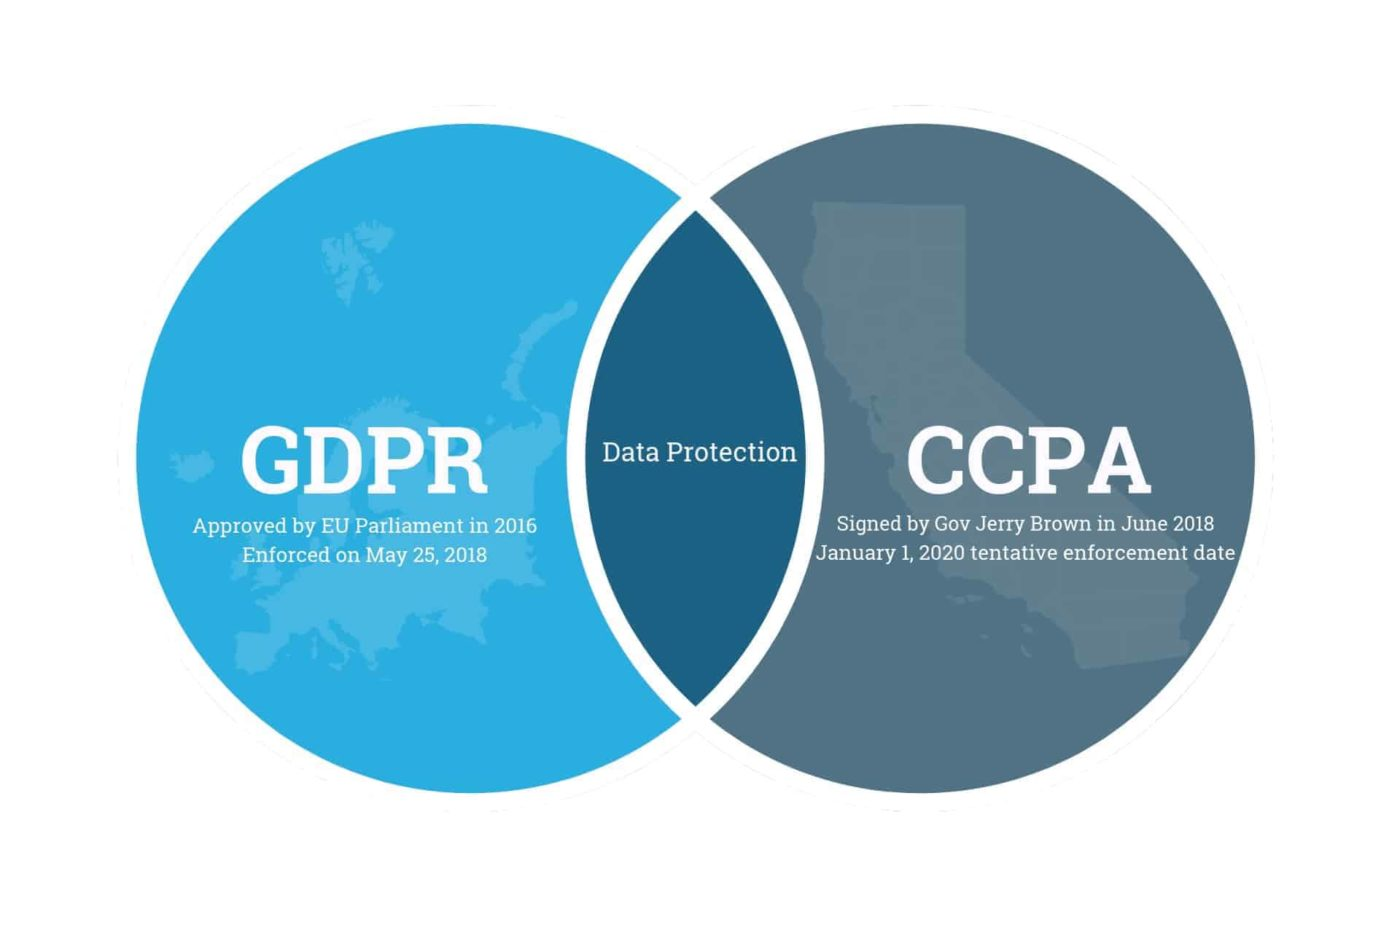 gdpr vs ccpa - What Is GDPR and CCPA And How To Make Your Website Compliant?